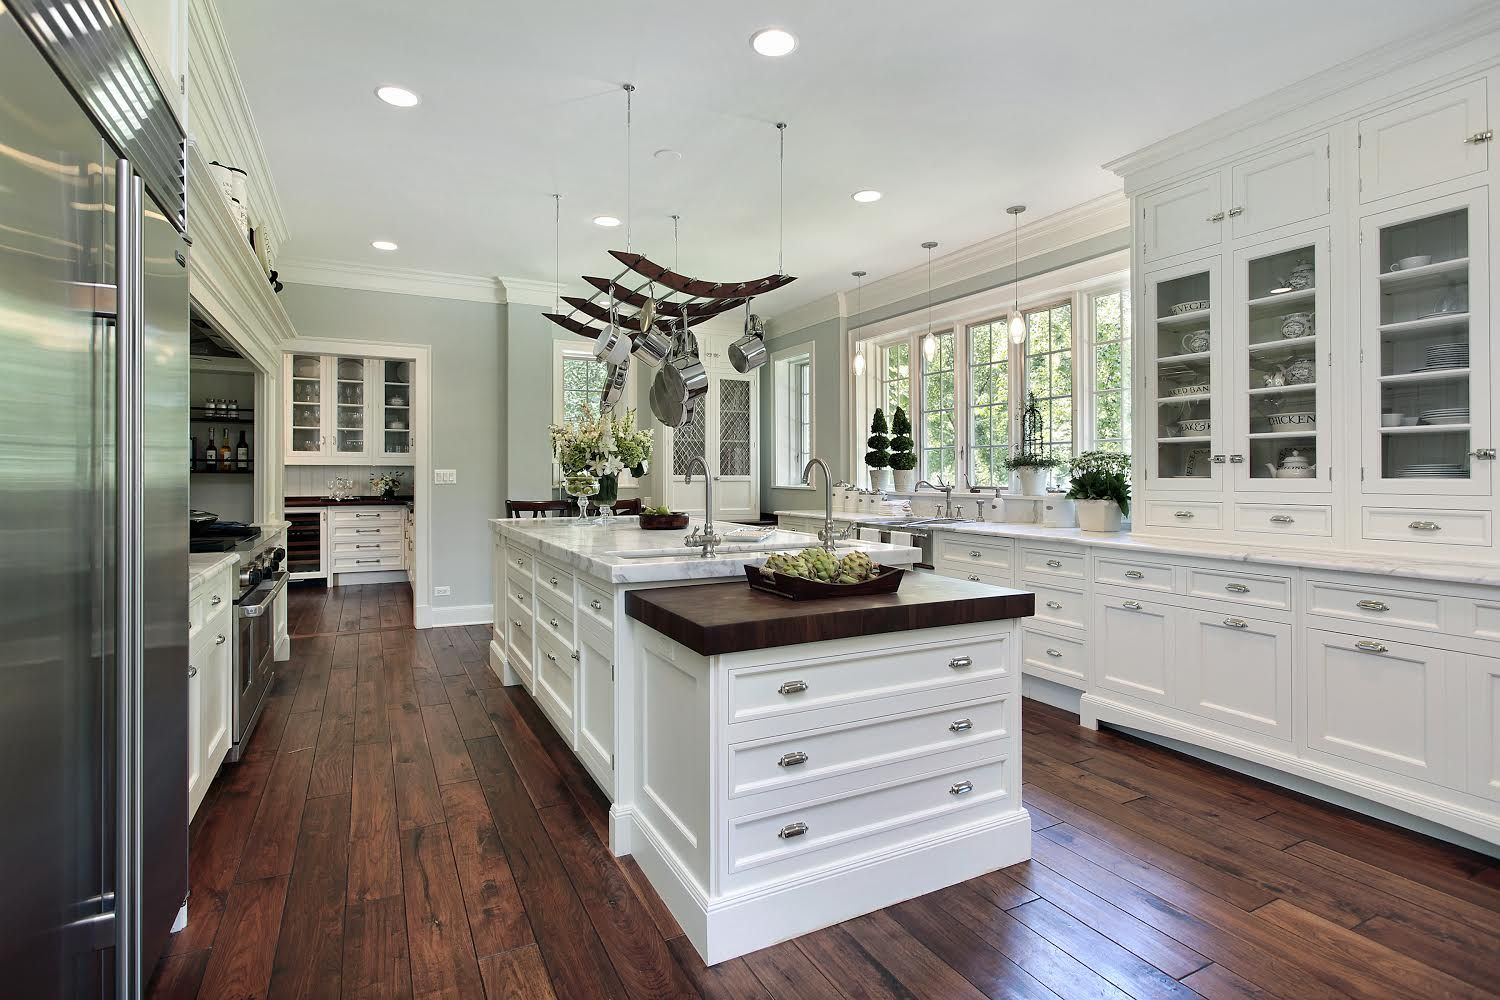 Triangle Real Estate Chapel Hill Cary Raleigh And Durham Triangle Nc Homes For Sale Luxury Kitchen Design White Kitchen Design New Kitchen Designs